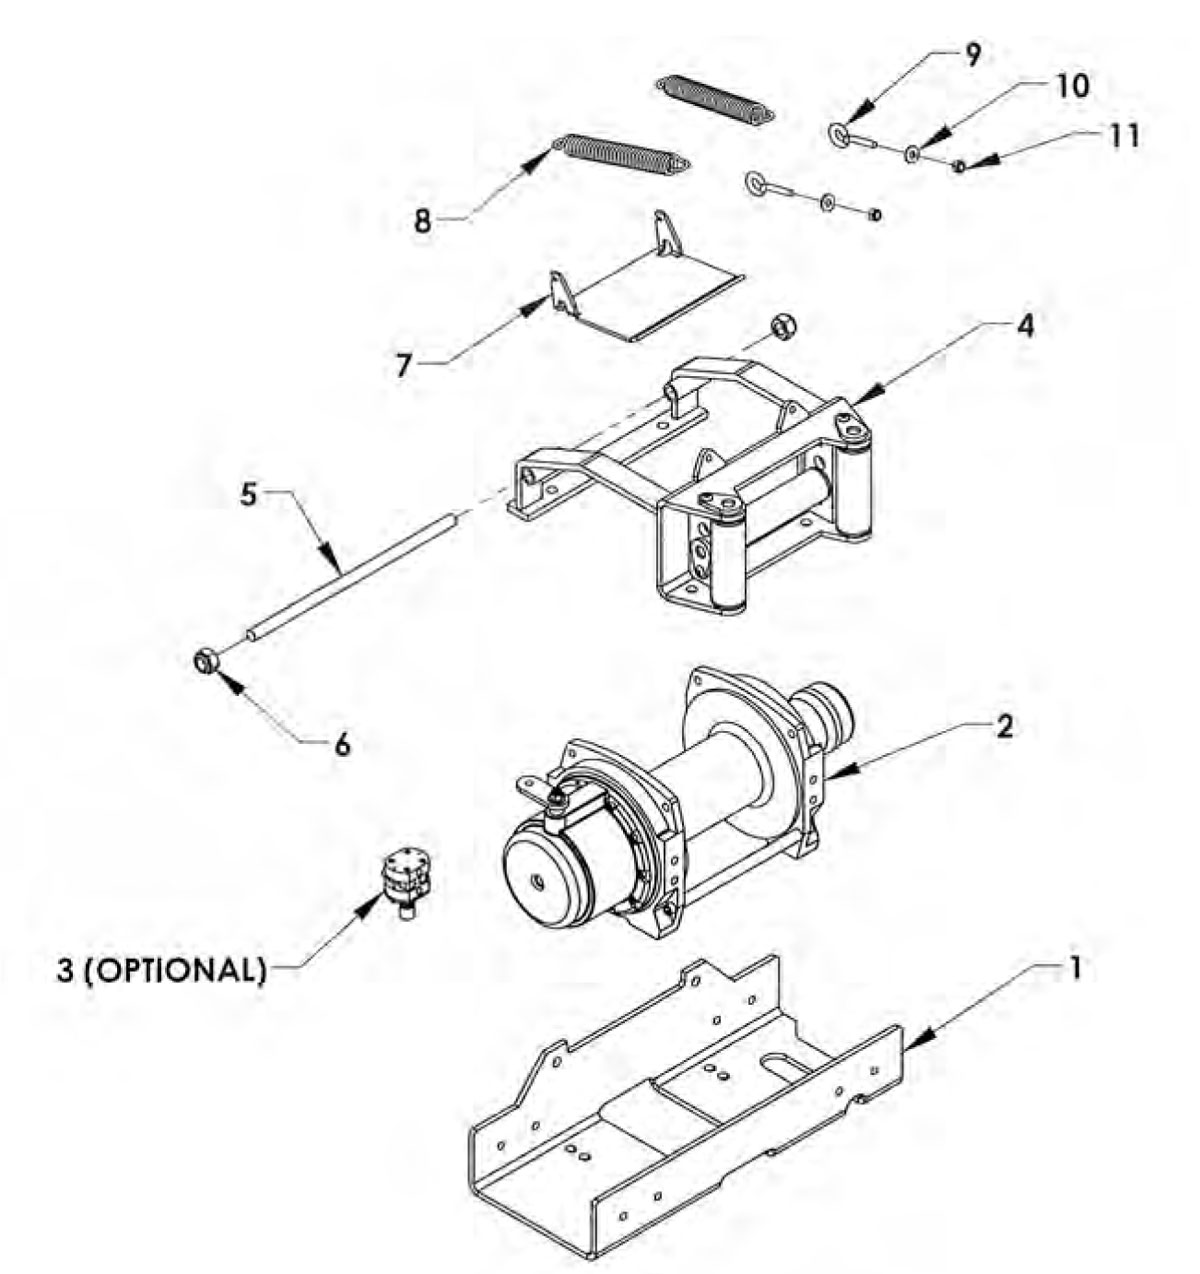 Outstanding warn atv winch wiring diagram ponent electrical